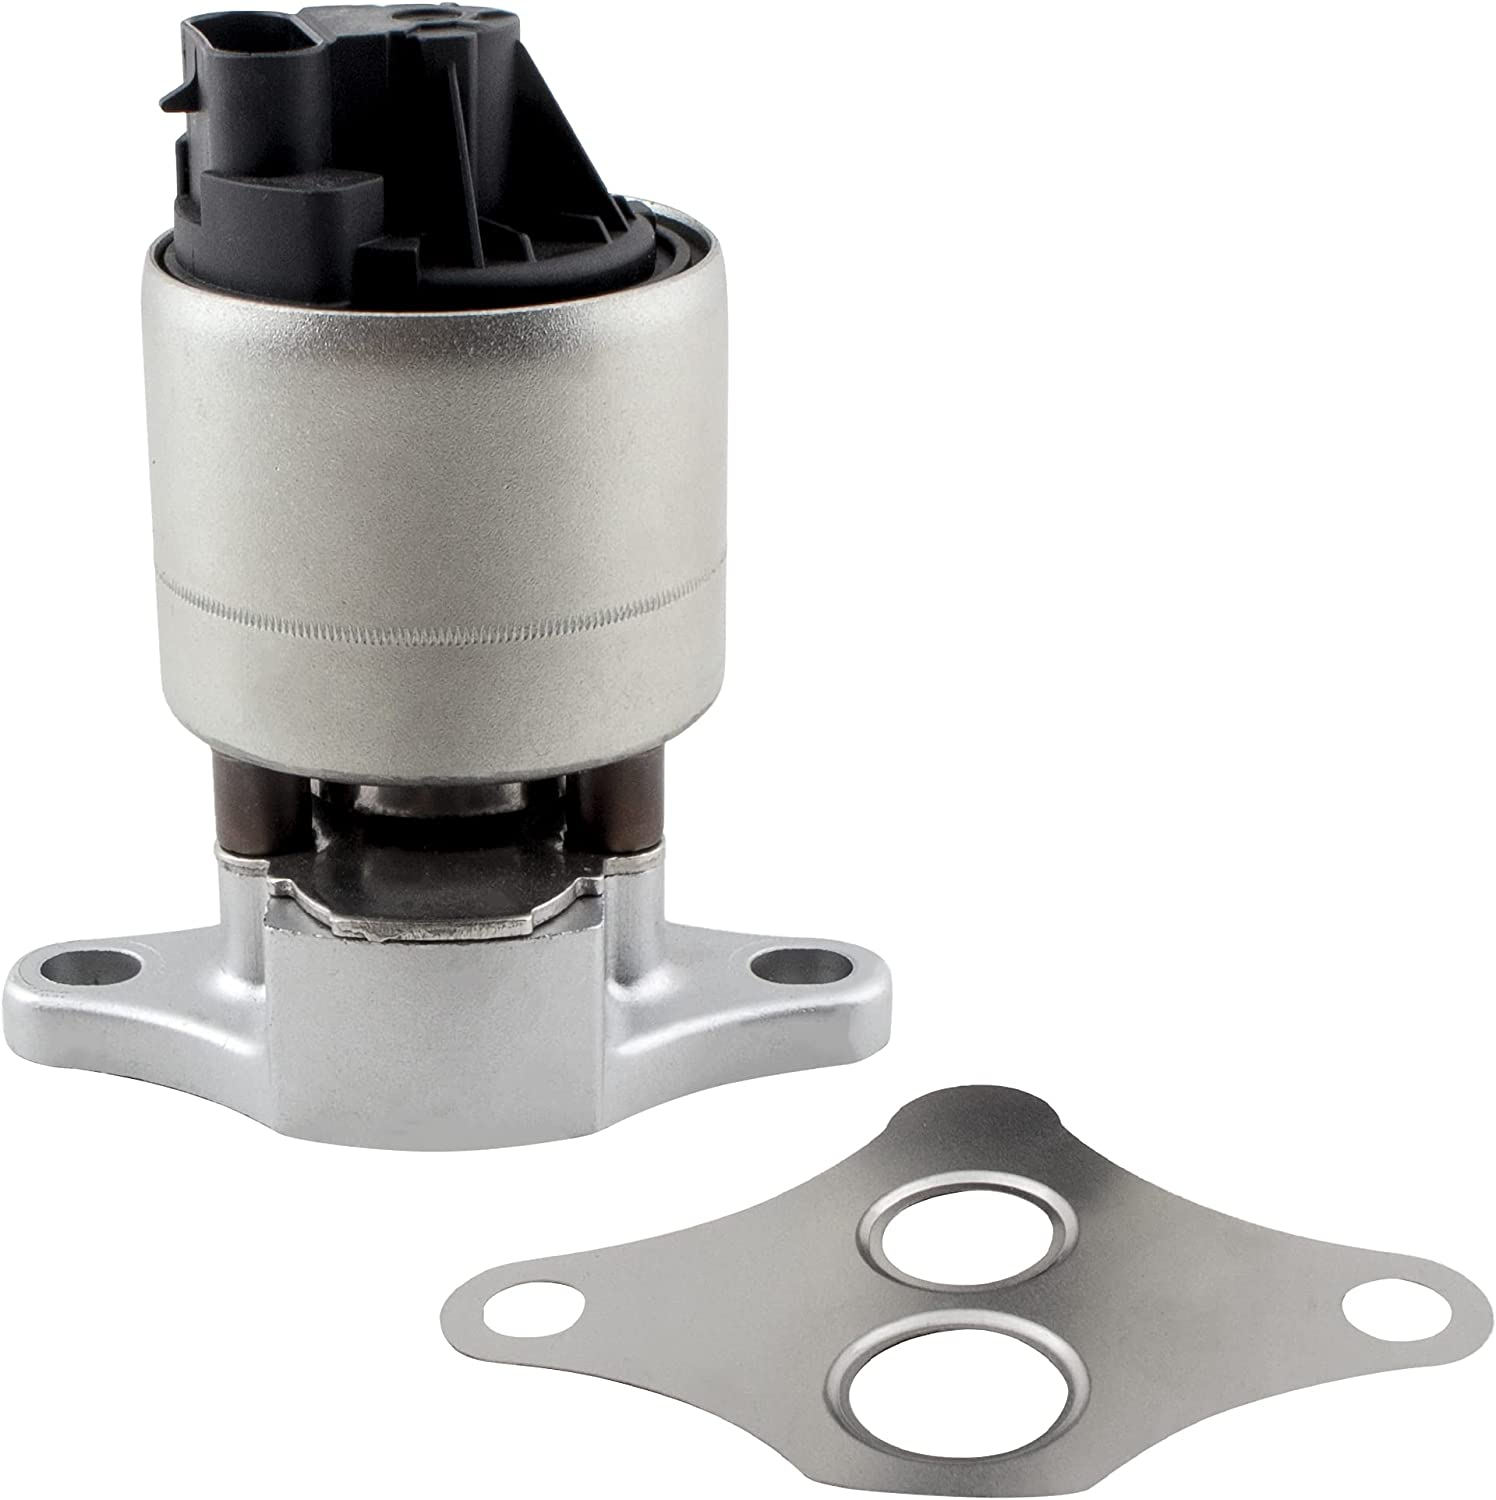 BOXI EGR Valve Compatible with Century Mali Skylark Ranking integrated 1st place Ranking TOP17 BUIC-K CHEVY